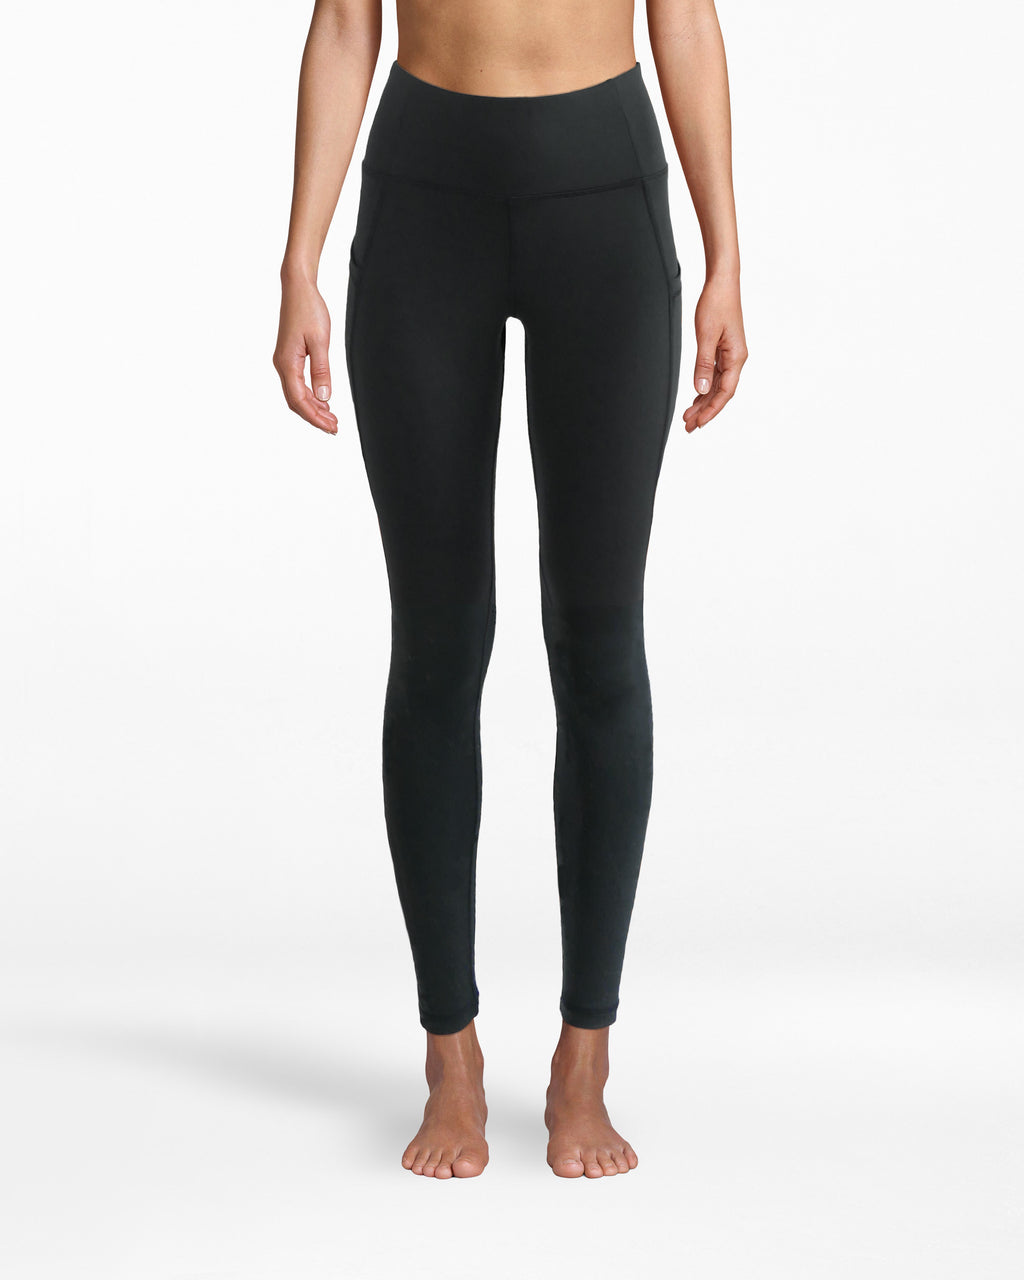 "N8ZN002 - Solid 7/8 Legging - activewear - activewear bottoms - Leggings over jeans. These are solid sport pants that have a 25.5"" leg and sculpting, smooth fit. Pair with a sports bra for yoga and blazer for the meeting after."